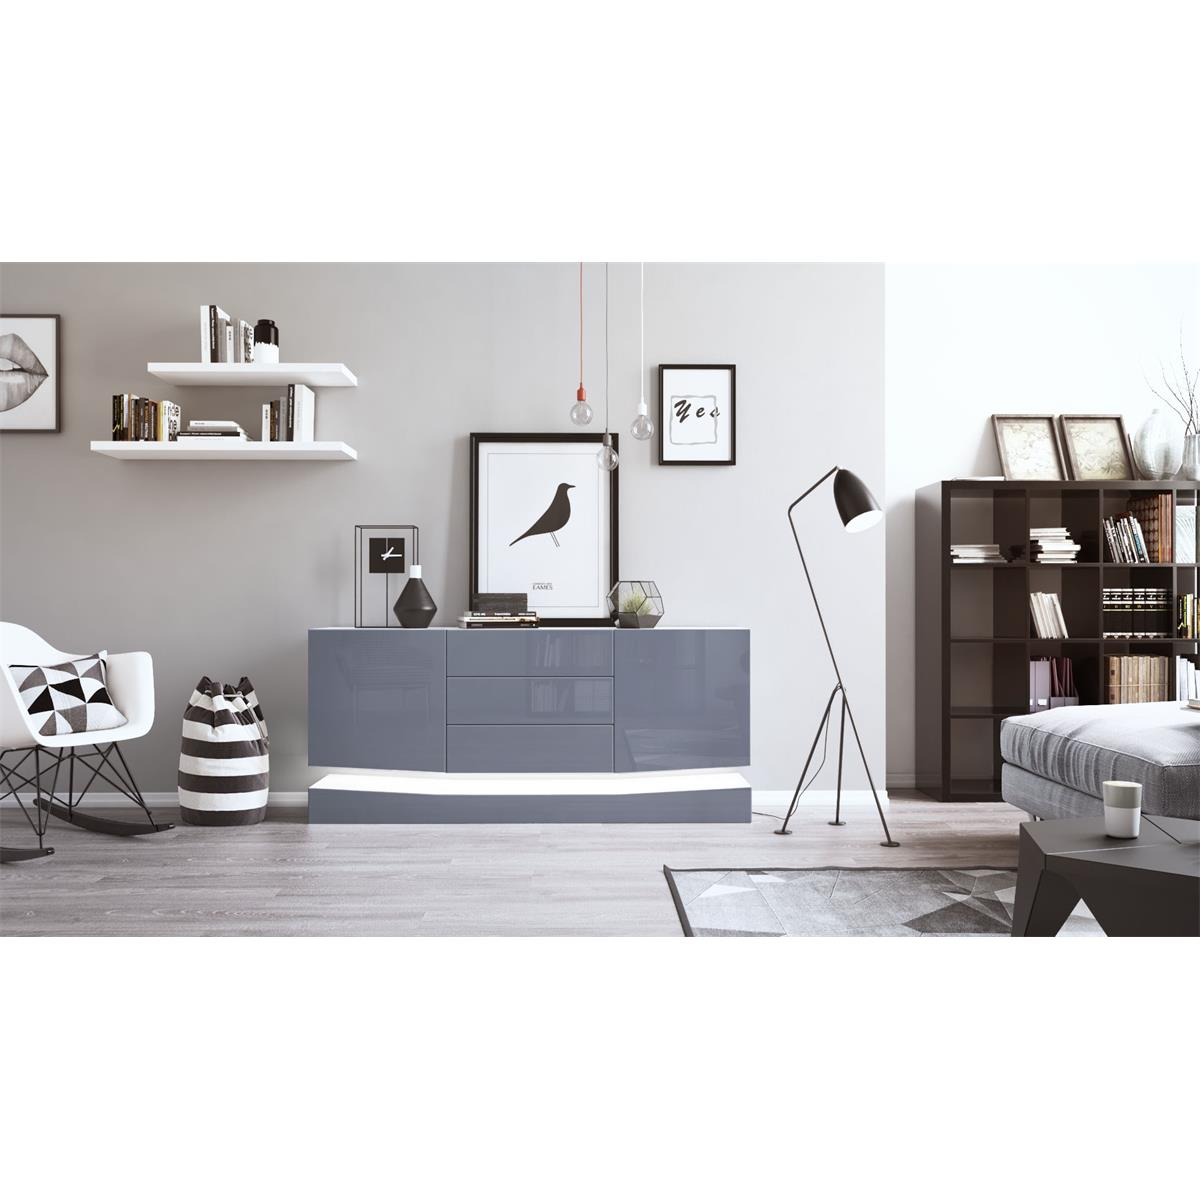 sideboard city mit sockel und led beleuchtung. Black Bedroom Furniture Sets. Home Design Ideas